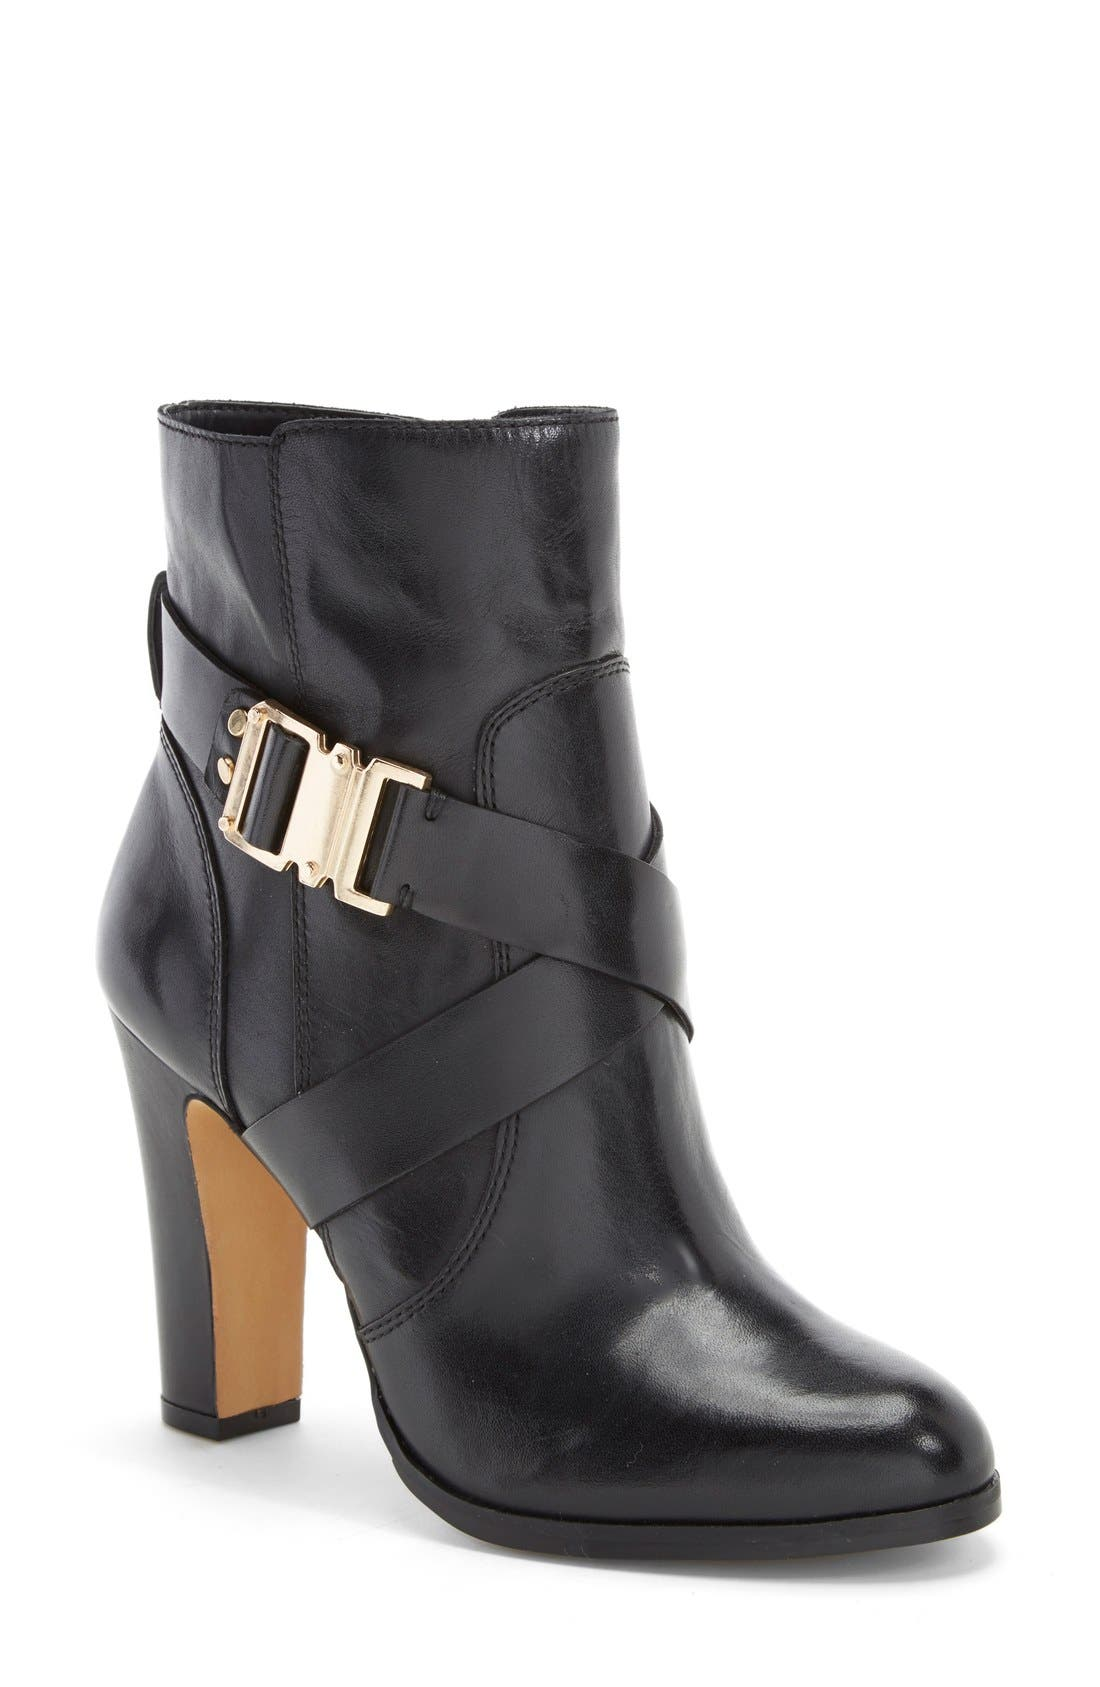 'Connolly' Belted Boot,                         Main,                         color, Black Leather